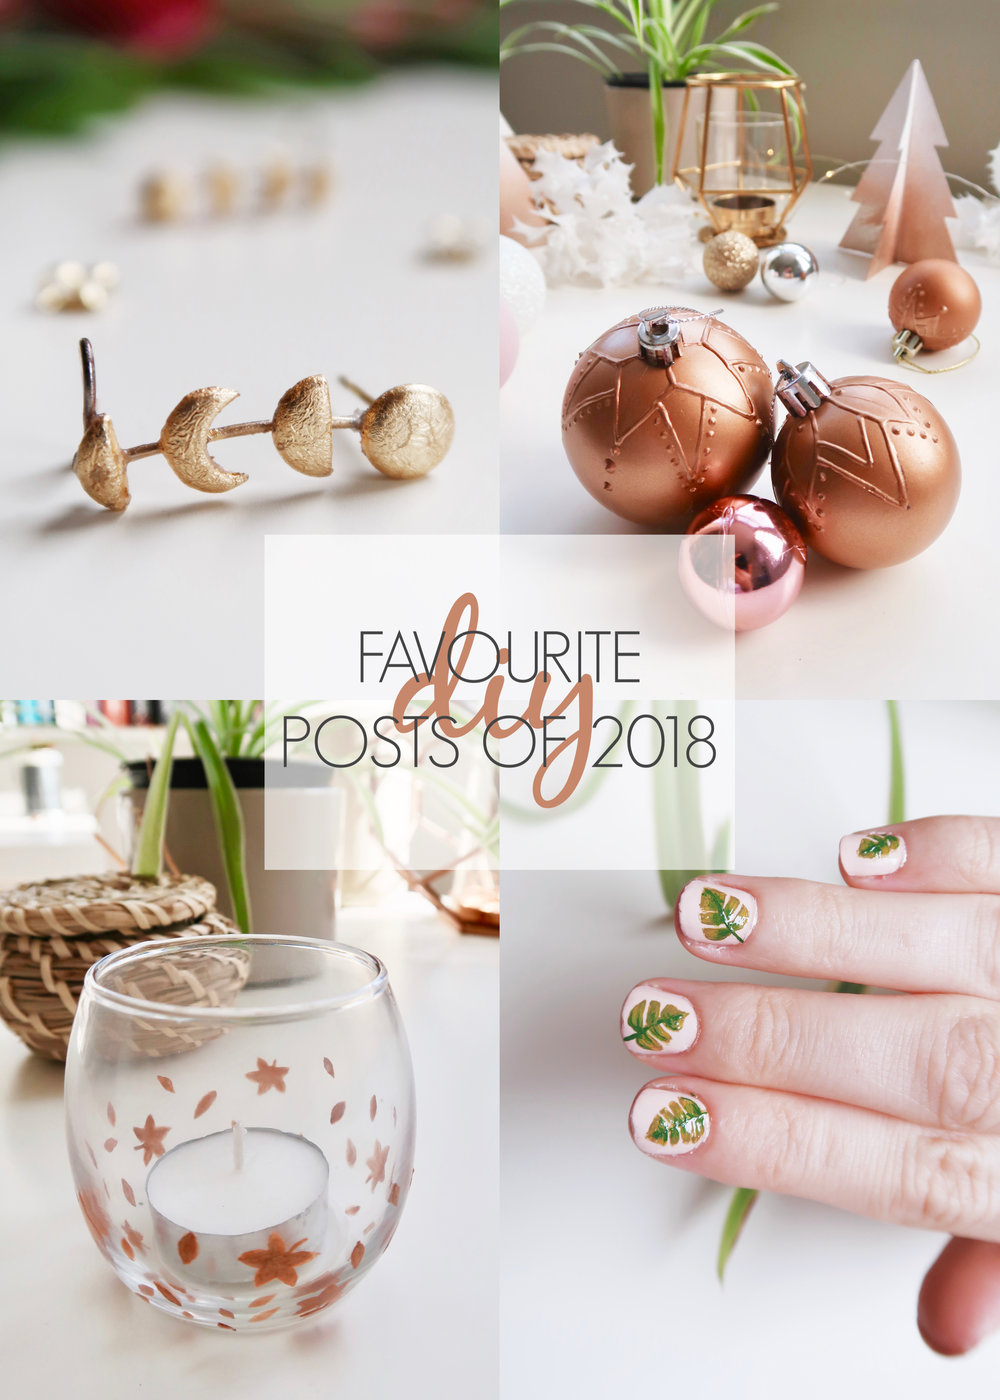 DIY Favourite Projects of 2018 by Isoscella